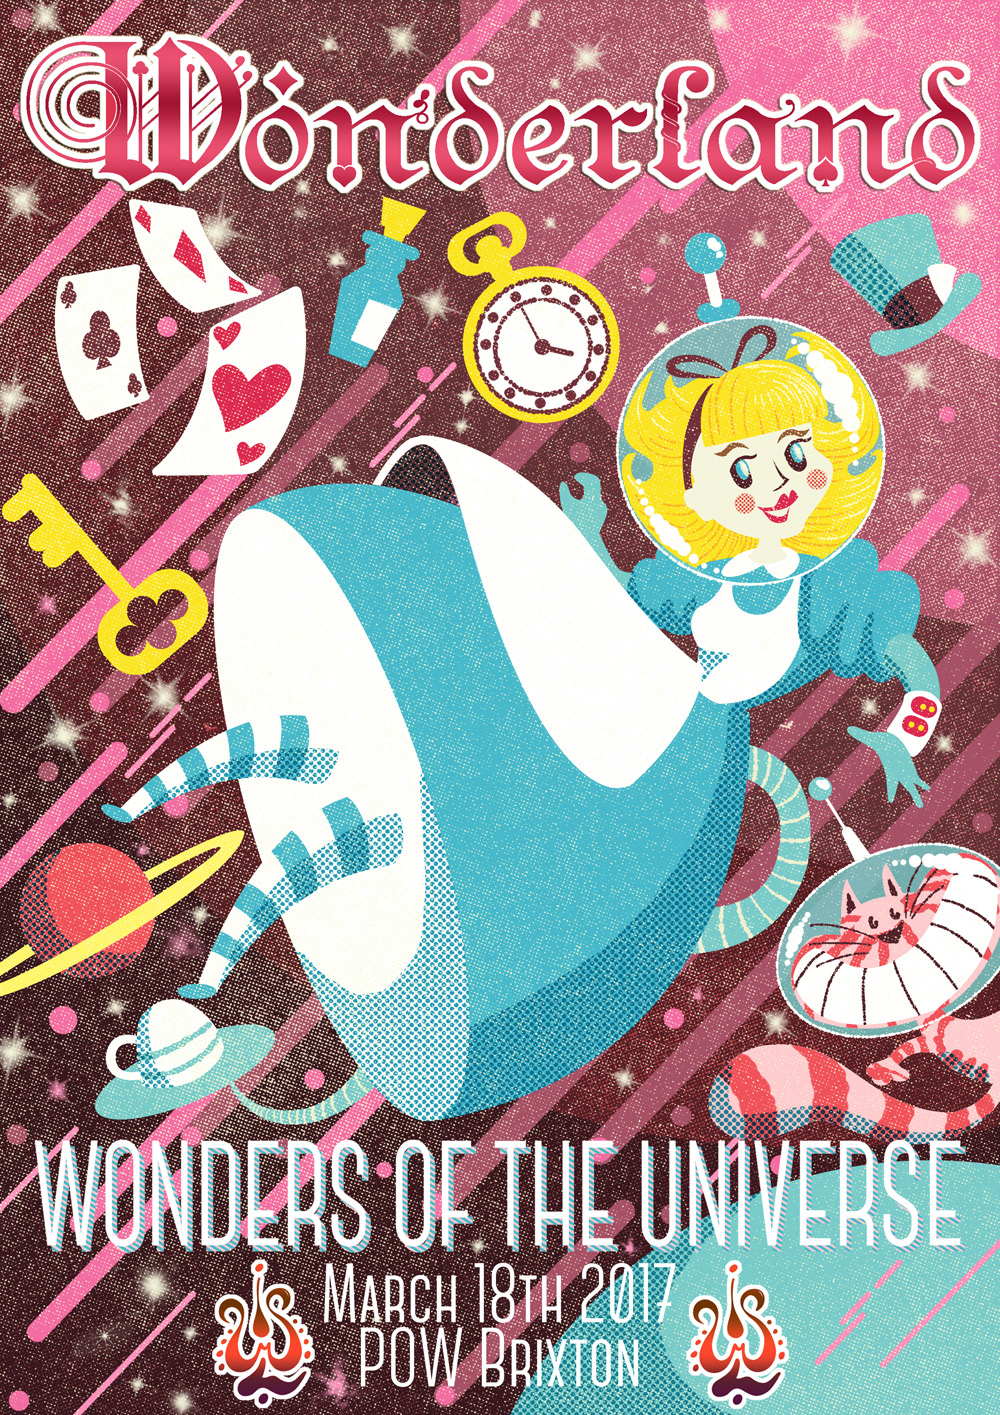 Illustrated promo flyer for Wonderland music festival, UK.